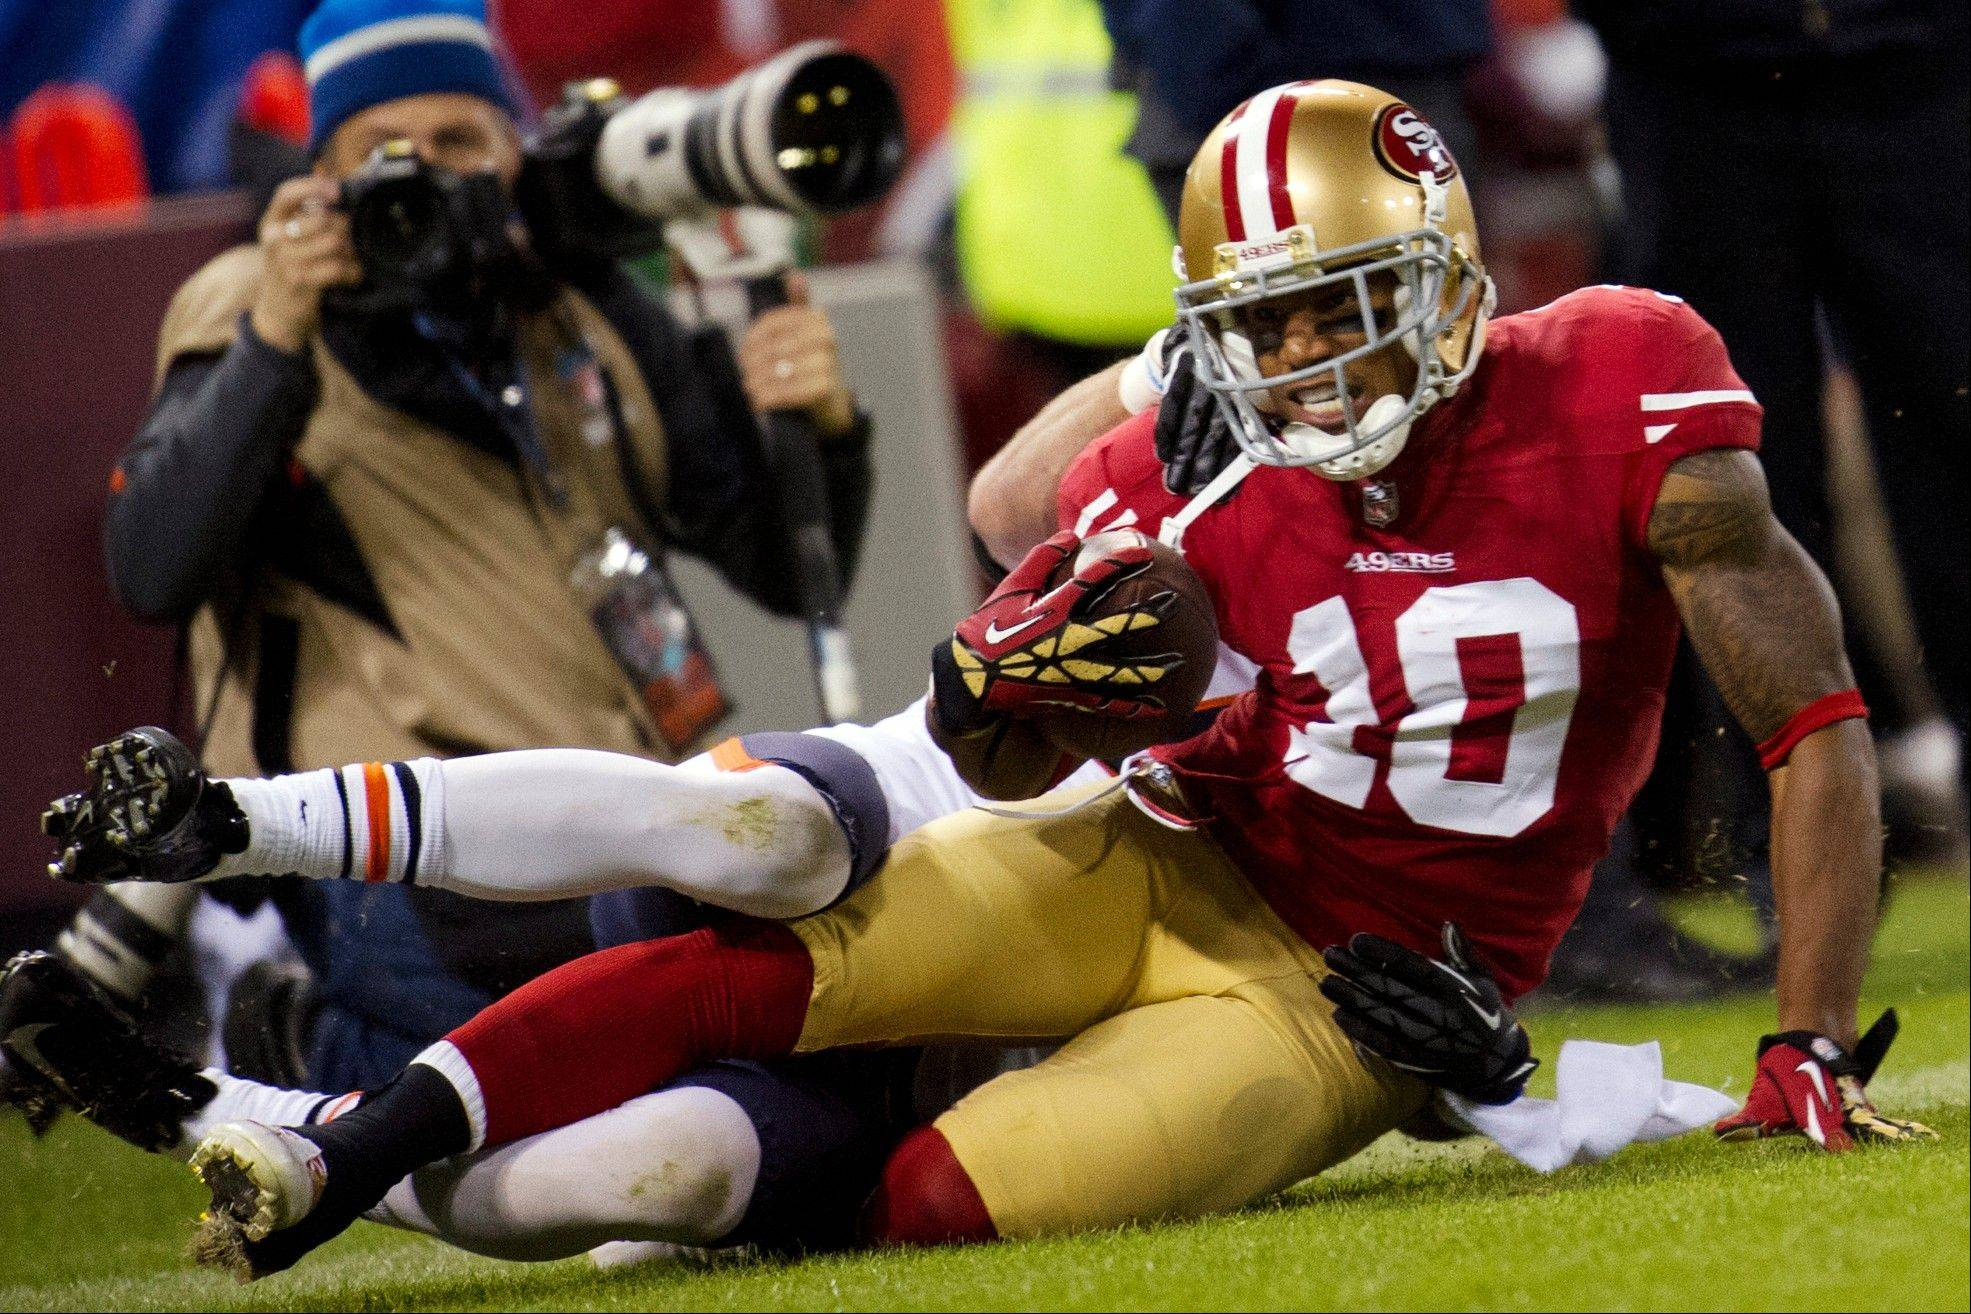 San Francisco 49ers wide receiver Kyle Williams is tackled by Chicago Bears free safety Chris Conte, obscured, near the goal line after a pass reception during the first quarter .